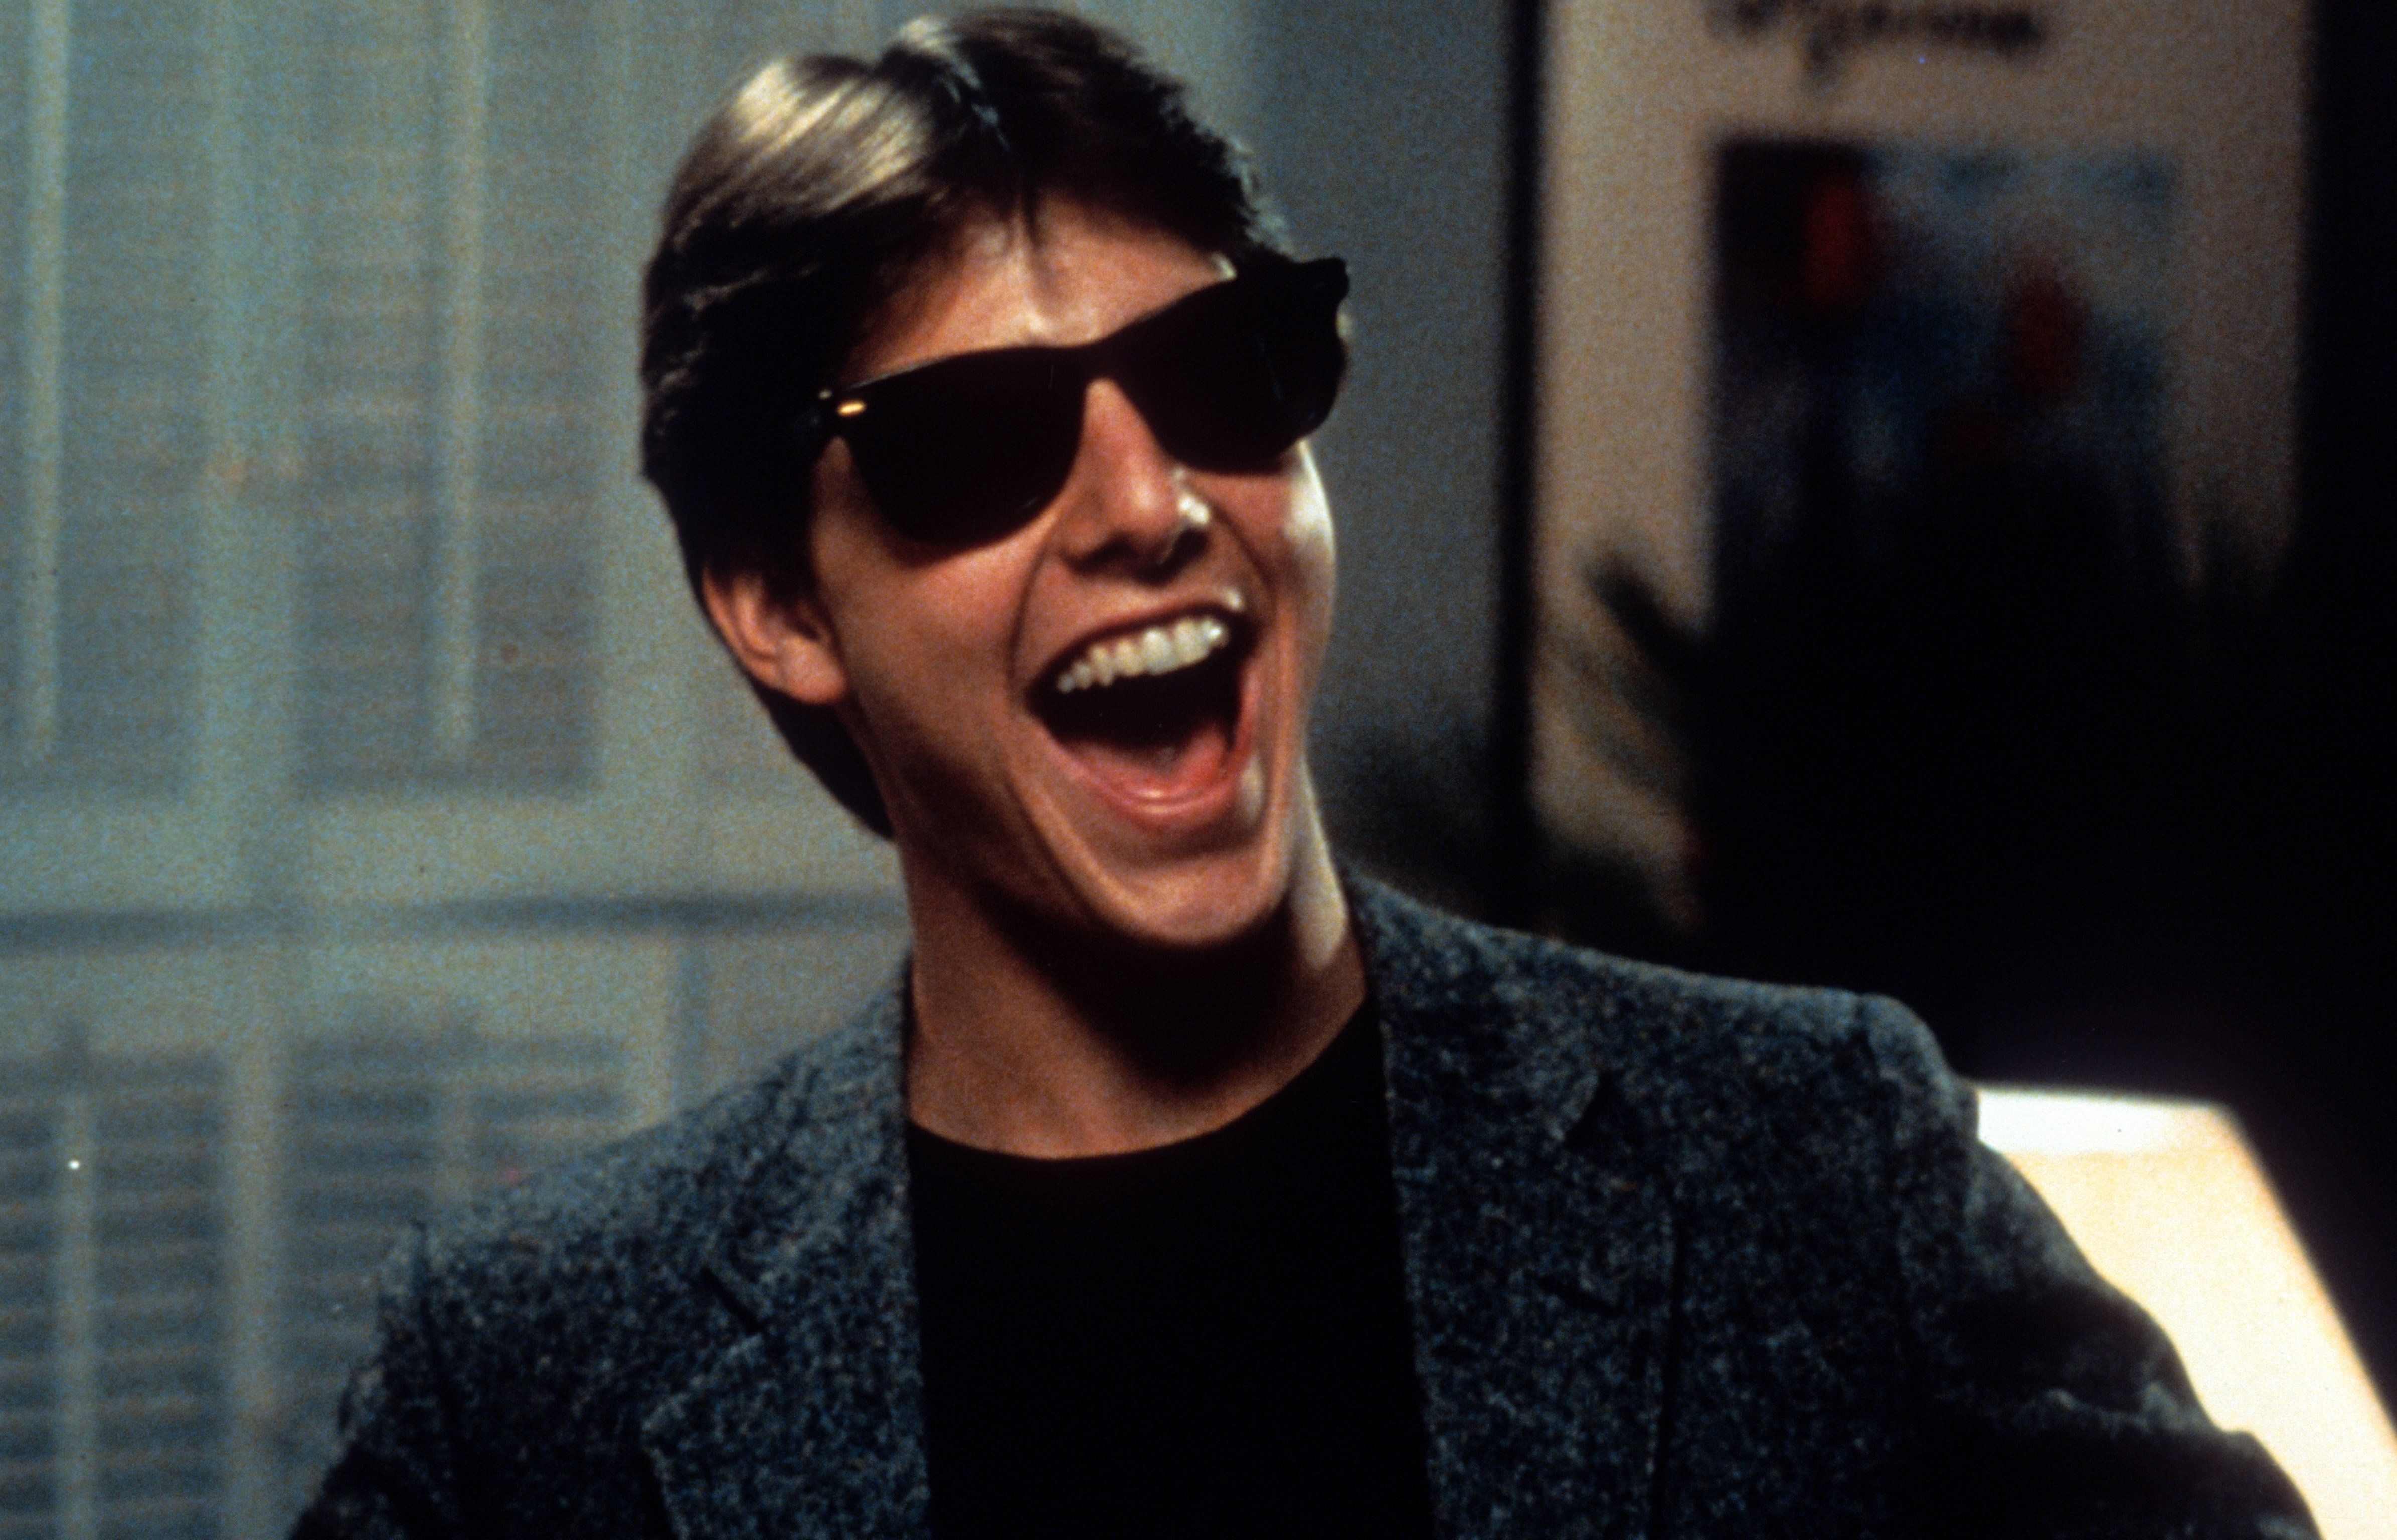 Tom Cruise laughs in a scene from the film 'Risky Business', 1983. (Photo by Warner Brothers/Getty Images)